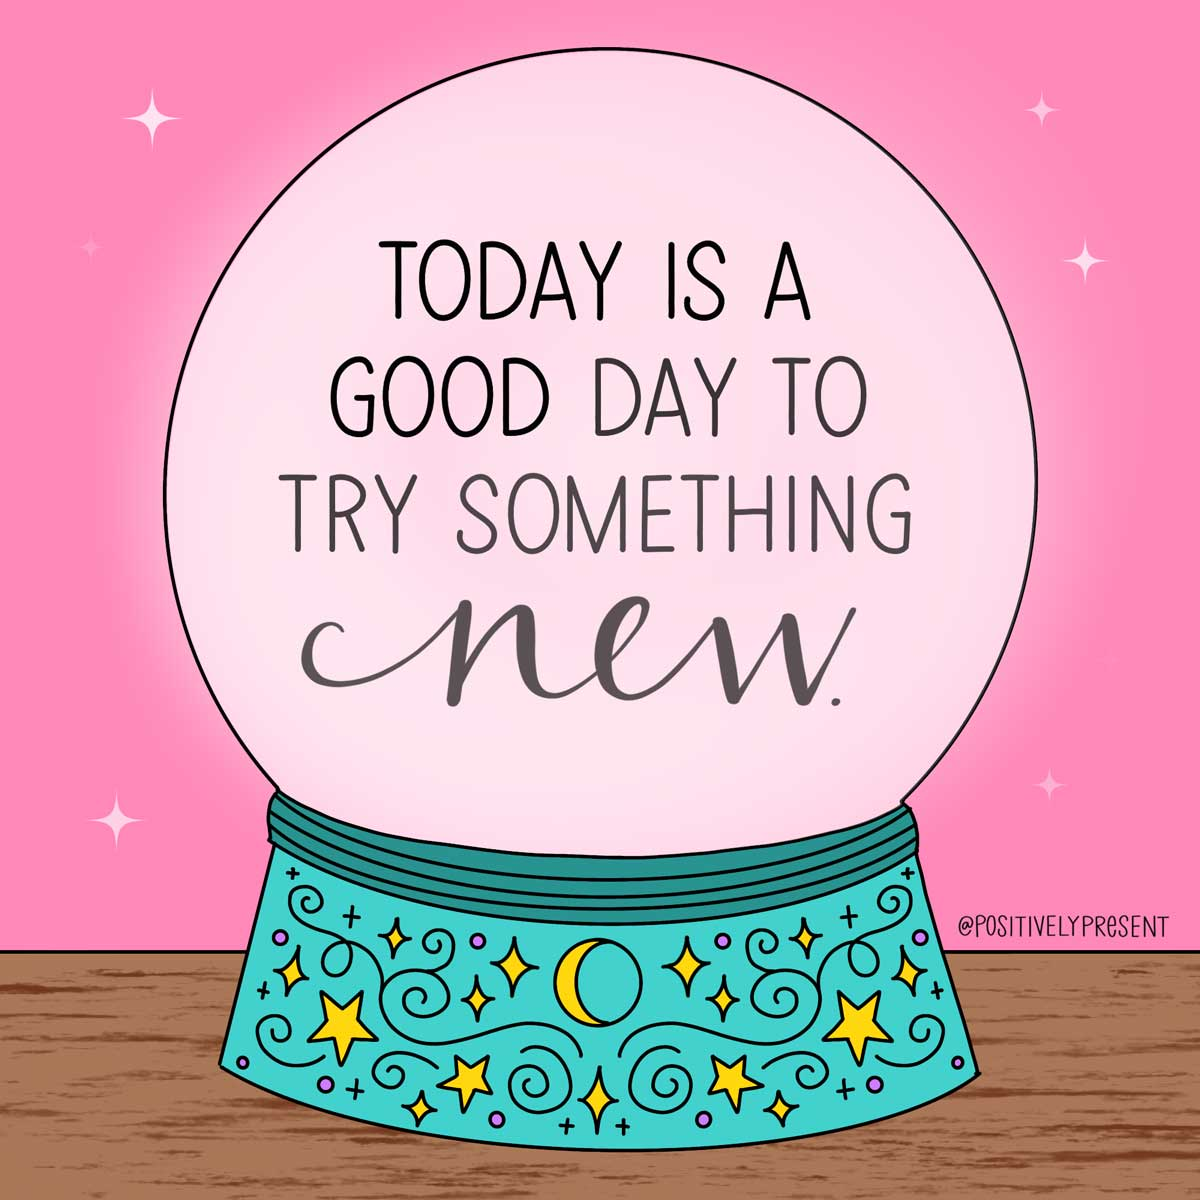 quote says a good day to try something new in snow globe drawing.